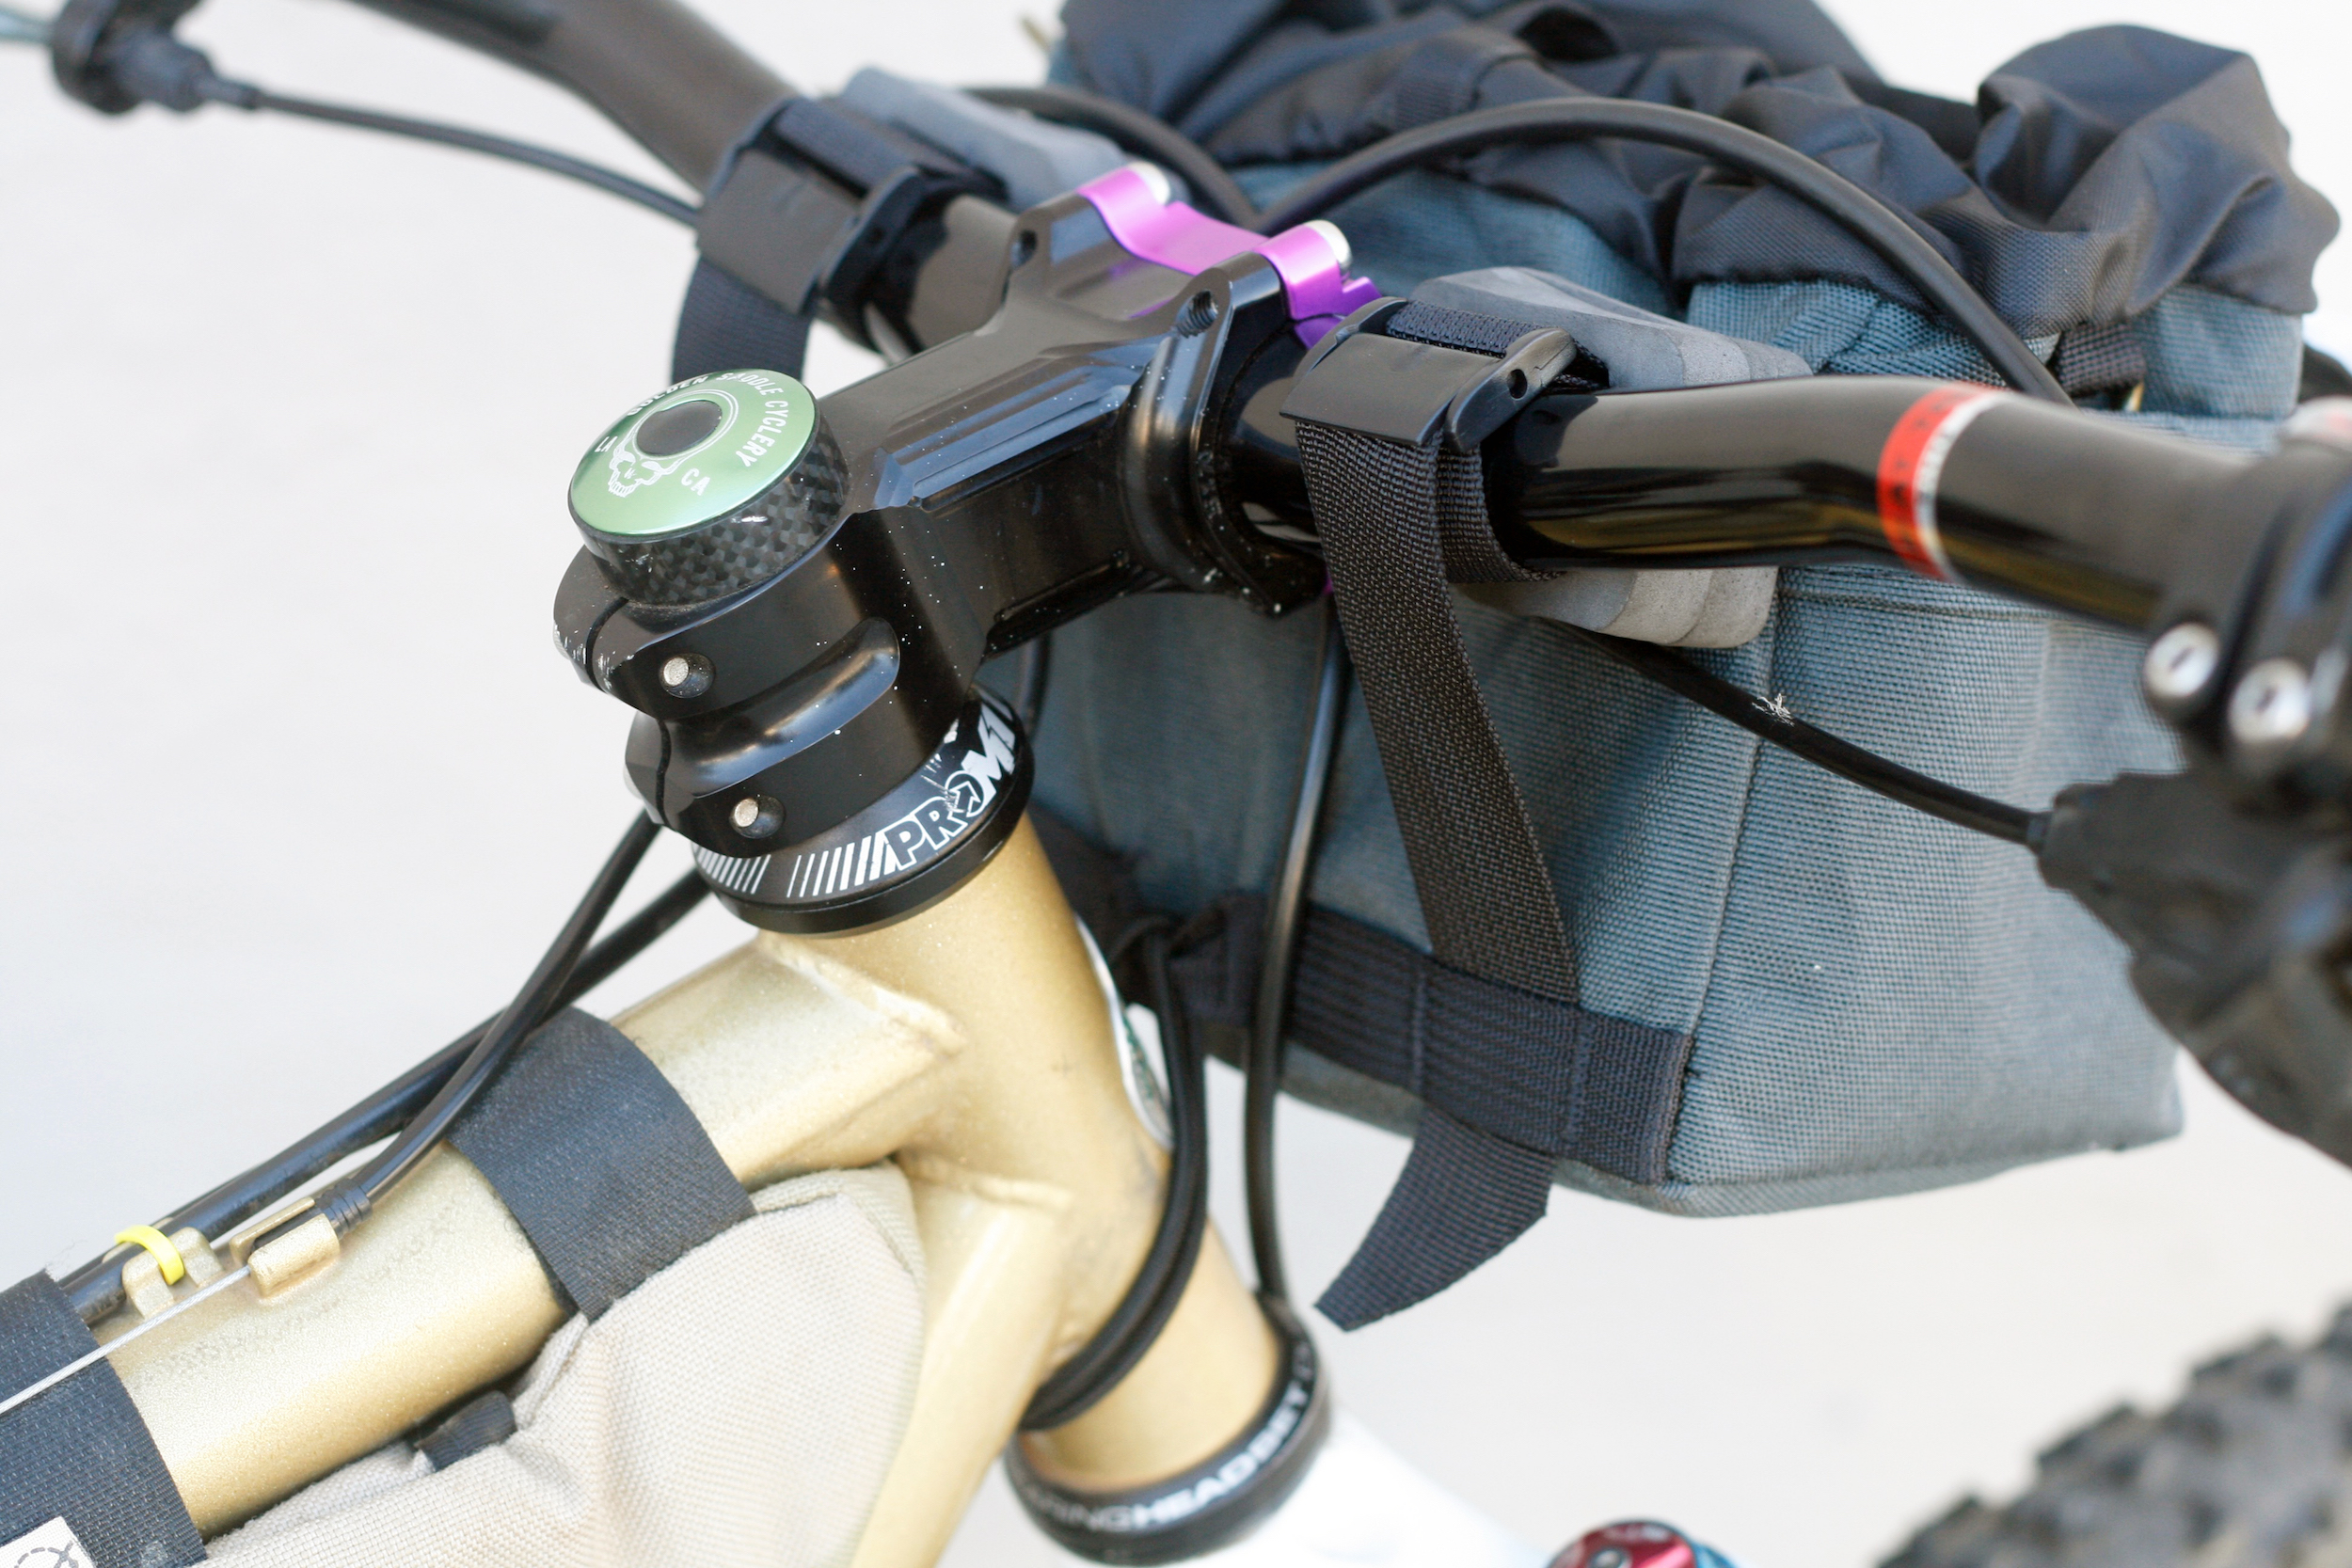 (2) spacers on each handlebar attachment, Shimano brake levers need some room